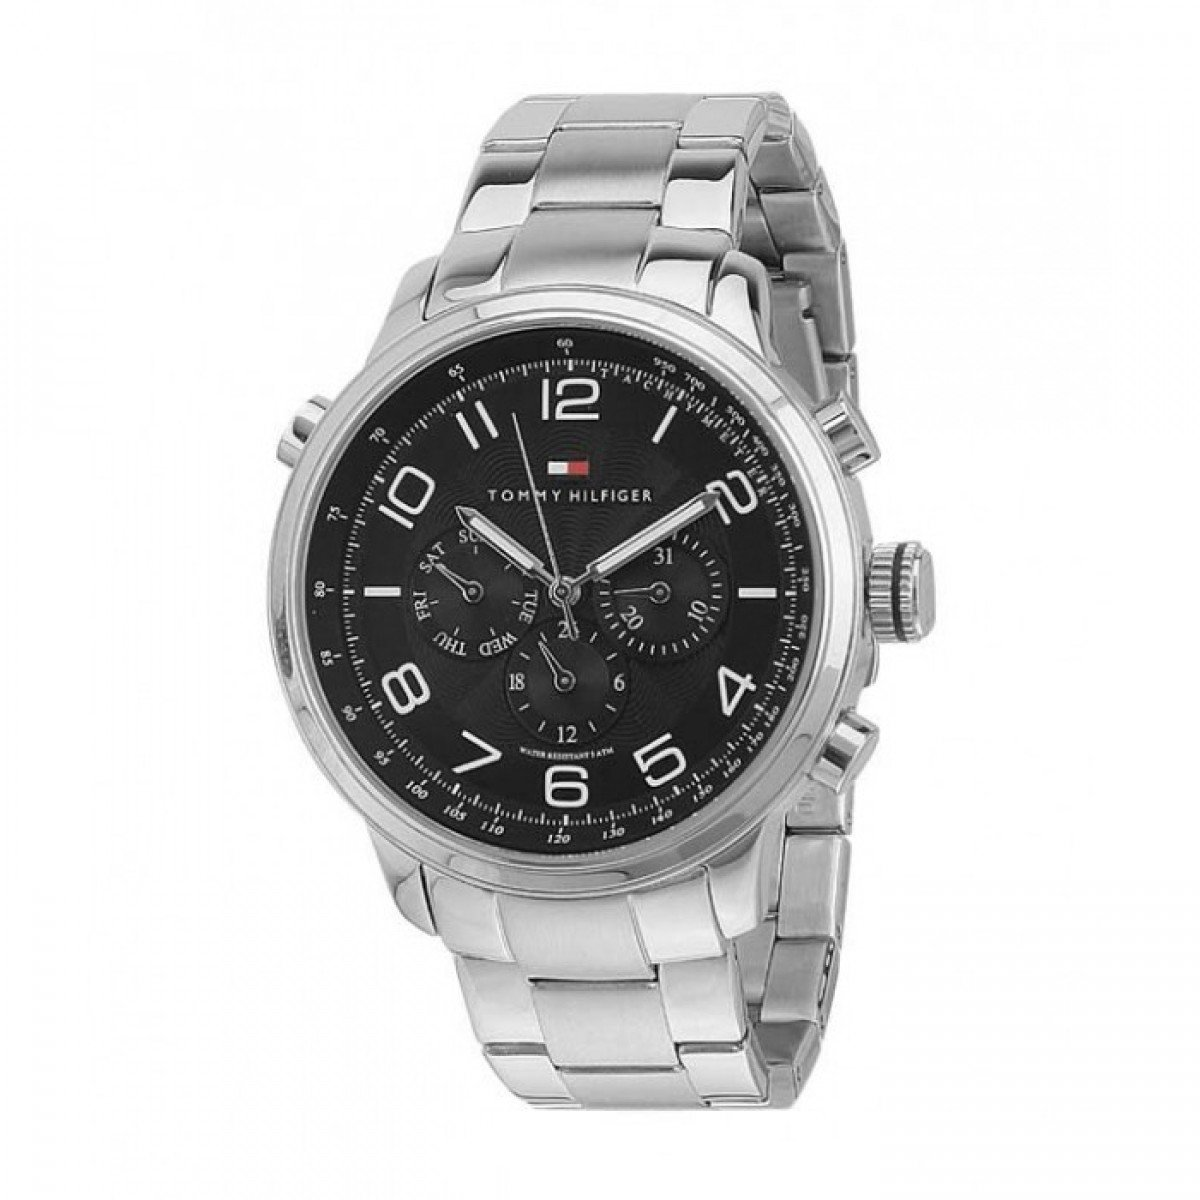 df5255385e8 Buy Tommy Hilfiger Analog Black Dial Men's Watch - NATH1790965J Online at  Low Prices in India - Amazon.in